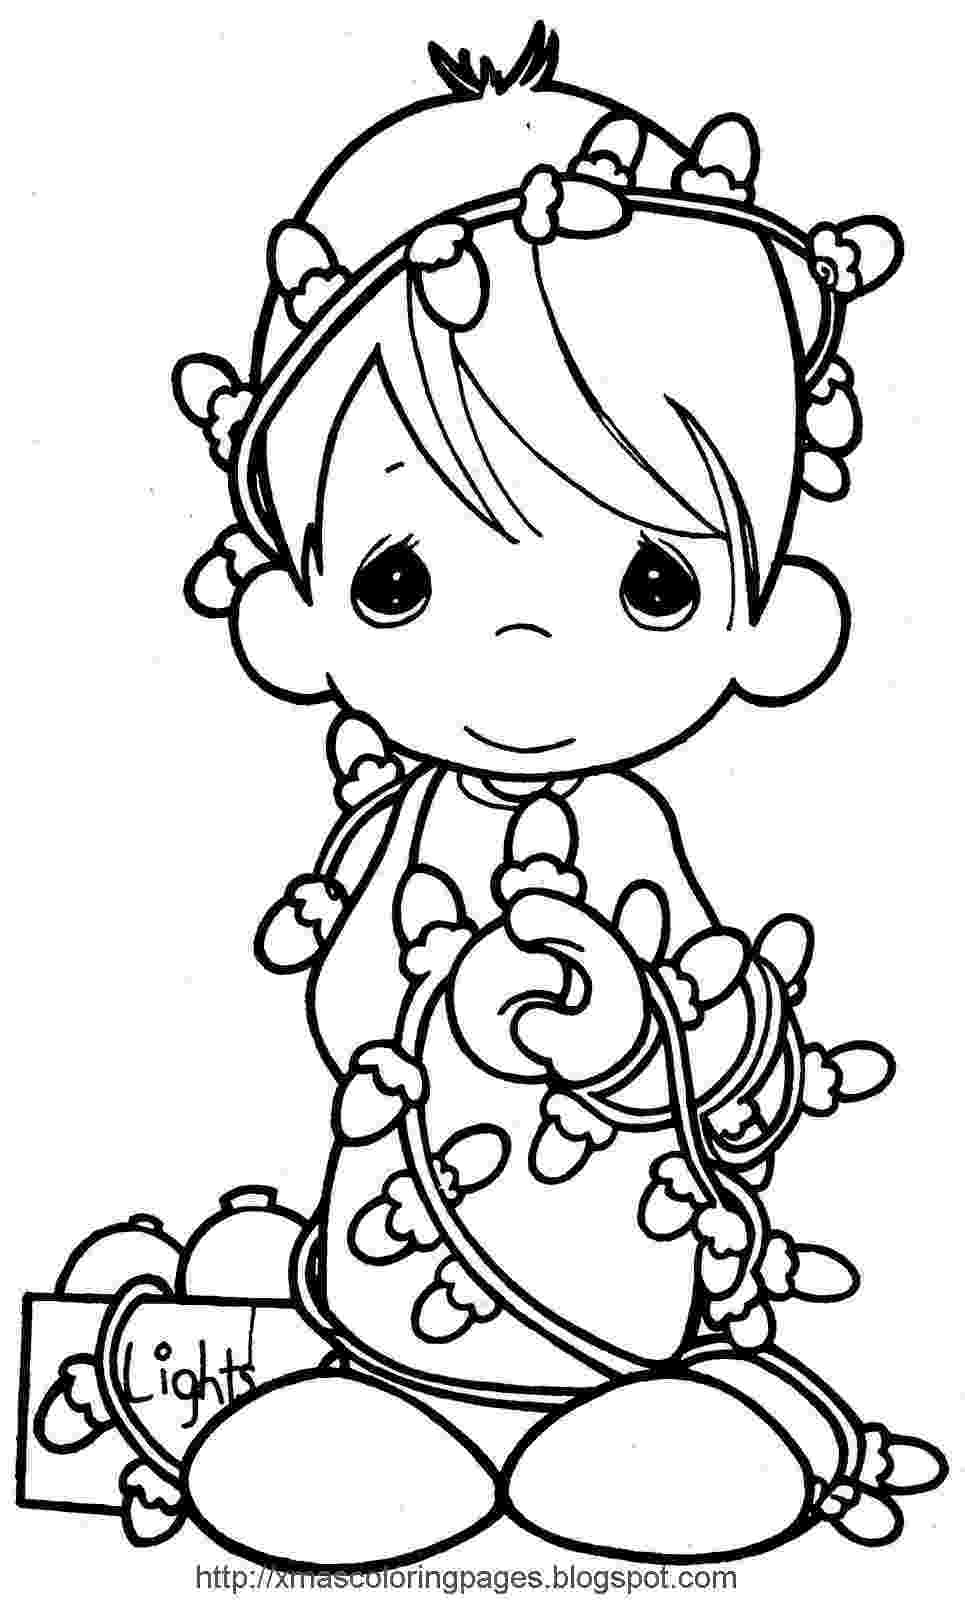 christmas coloring pages to print free xmas coloring pages to coloring print christmas free pages